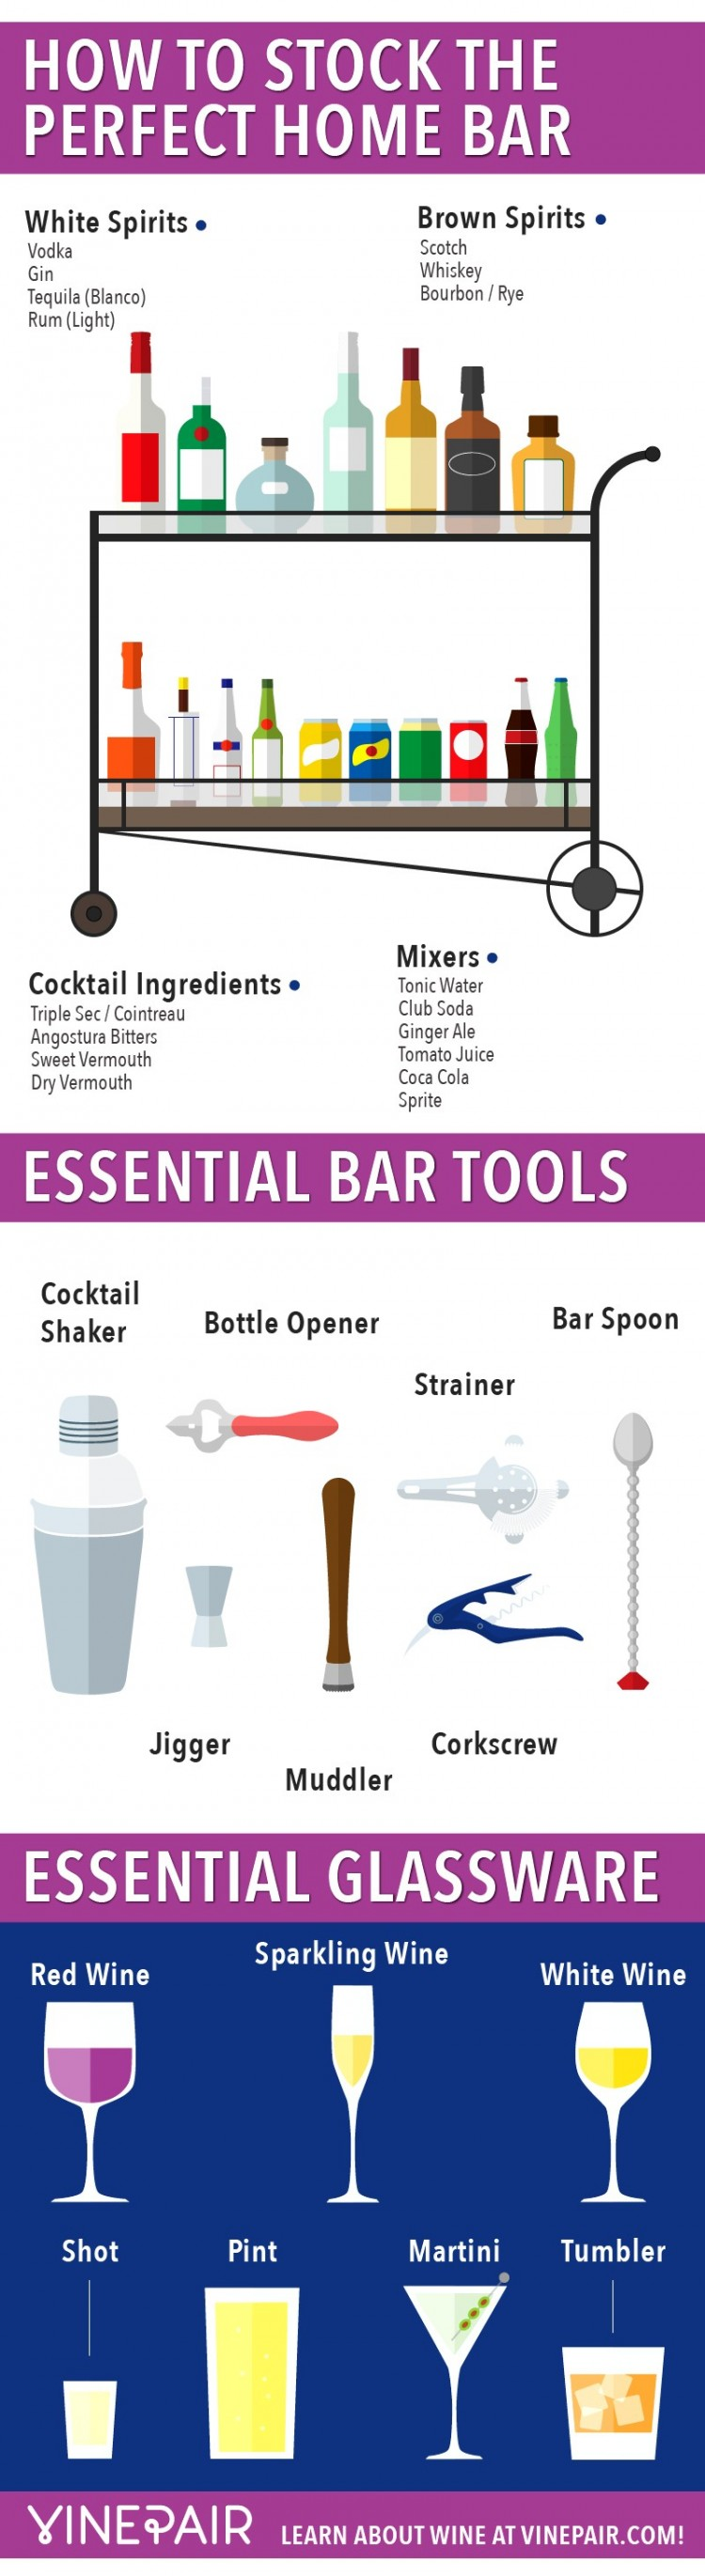 perfect-home-bar-infographic (1)